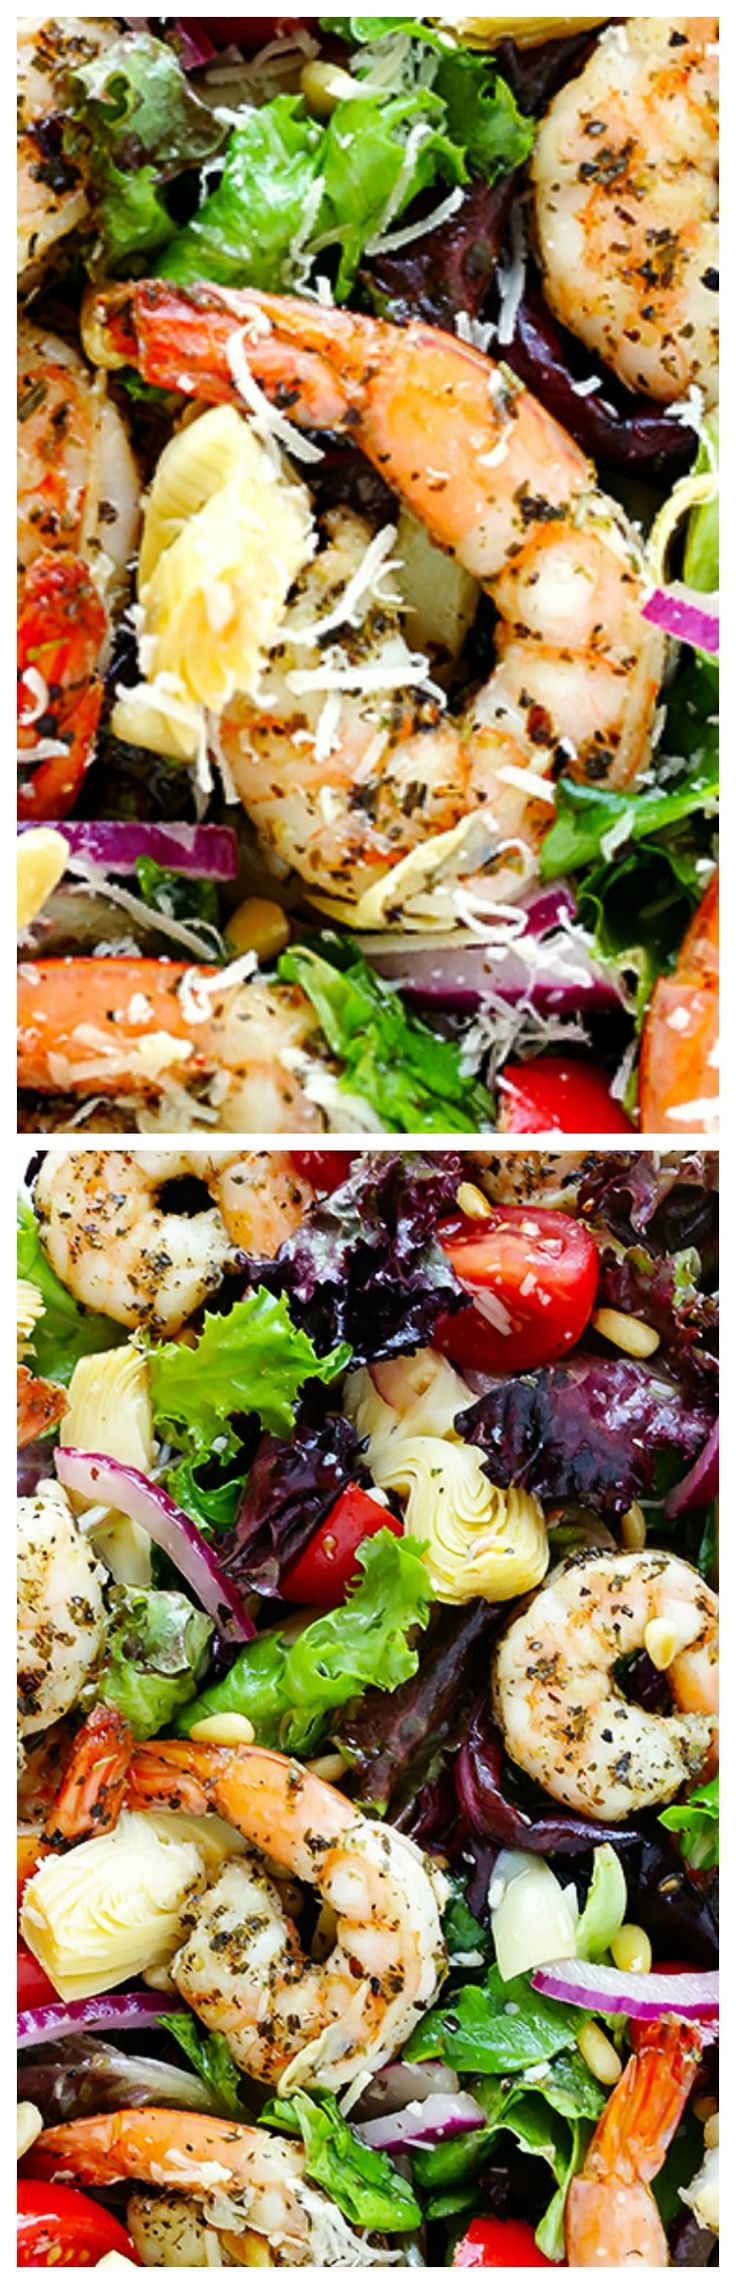 Shrimp and Artichoke Green Salad ~ Made with quick and easy Italian-herb shrimp, lots of artichoke hearts, fresh tomatoes, toasted pine nuts, and then it's all tossed together with a zesty lemon vinaigrette... So simple, yet so much flavor!